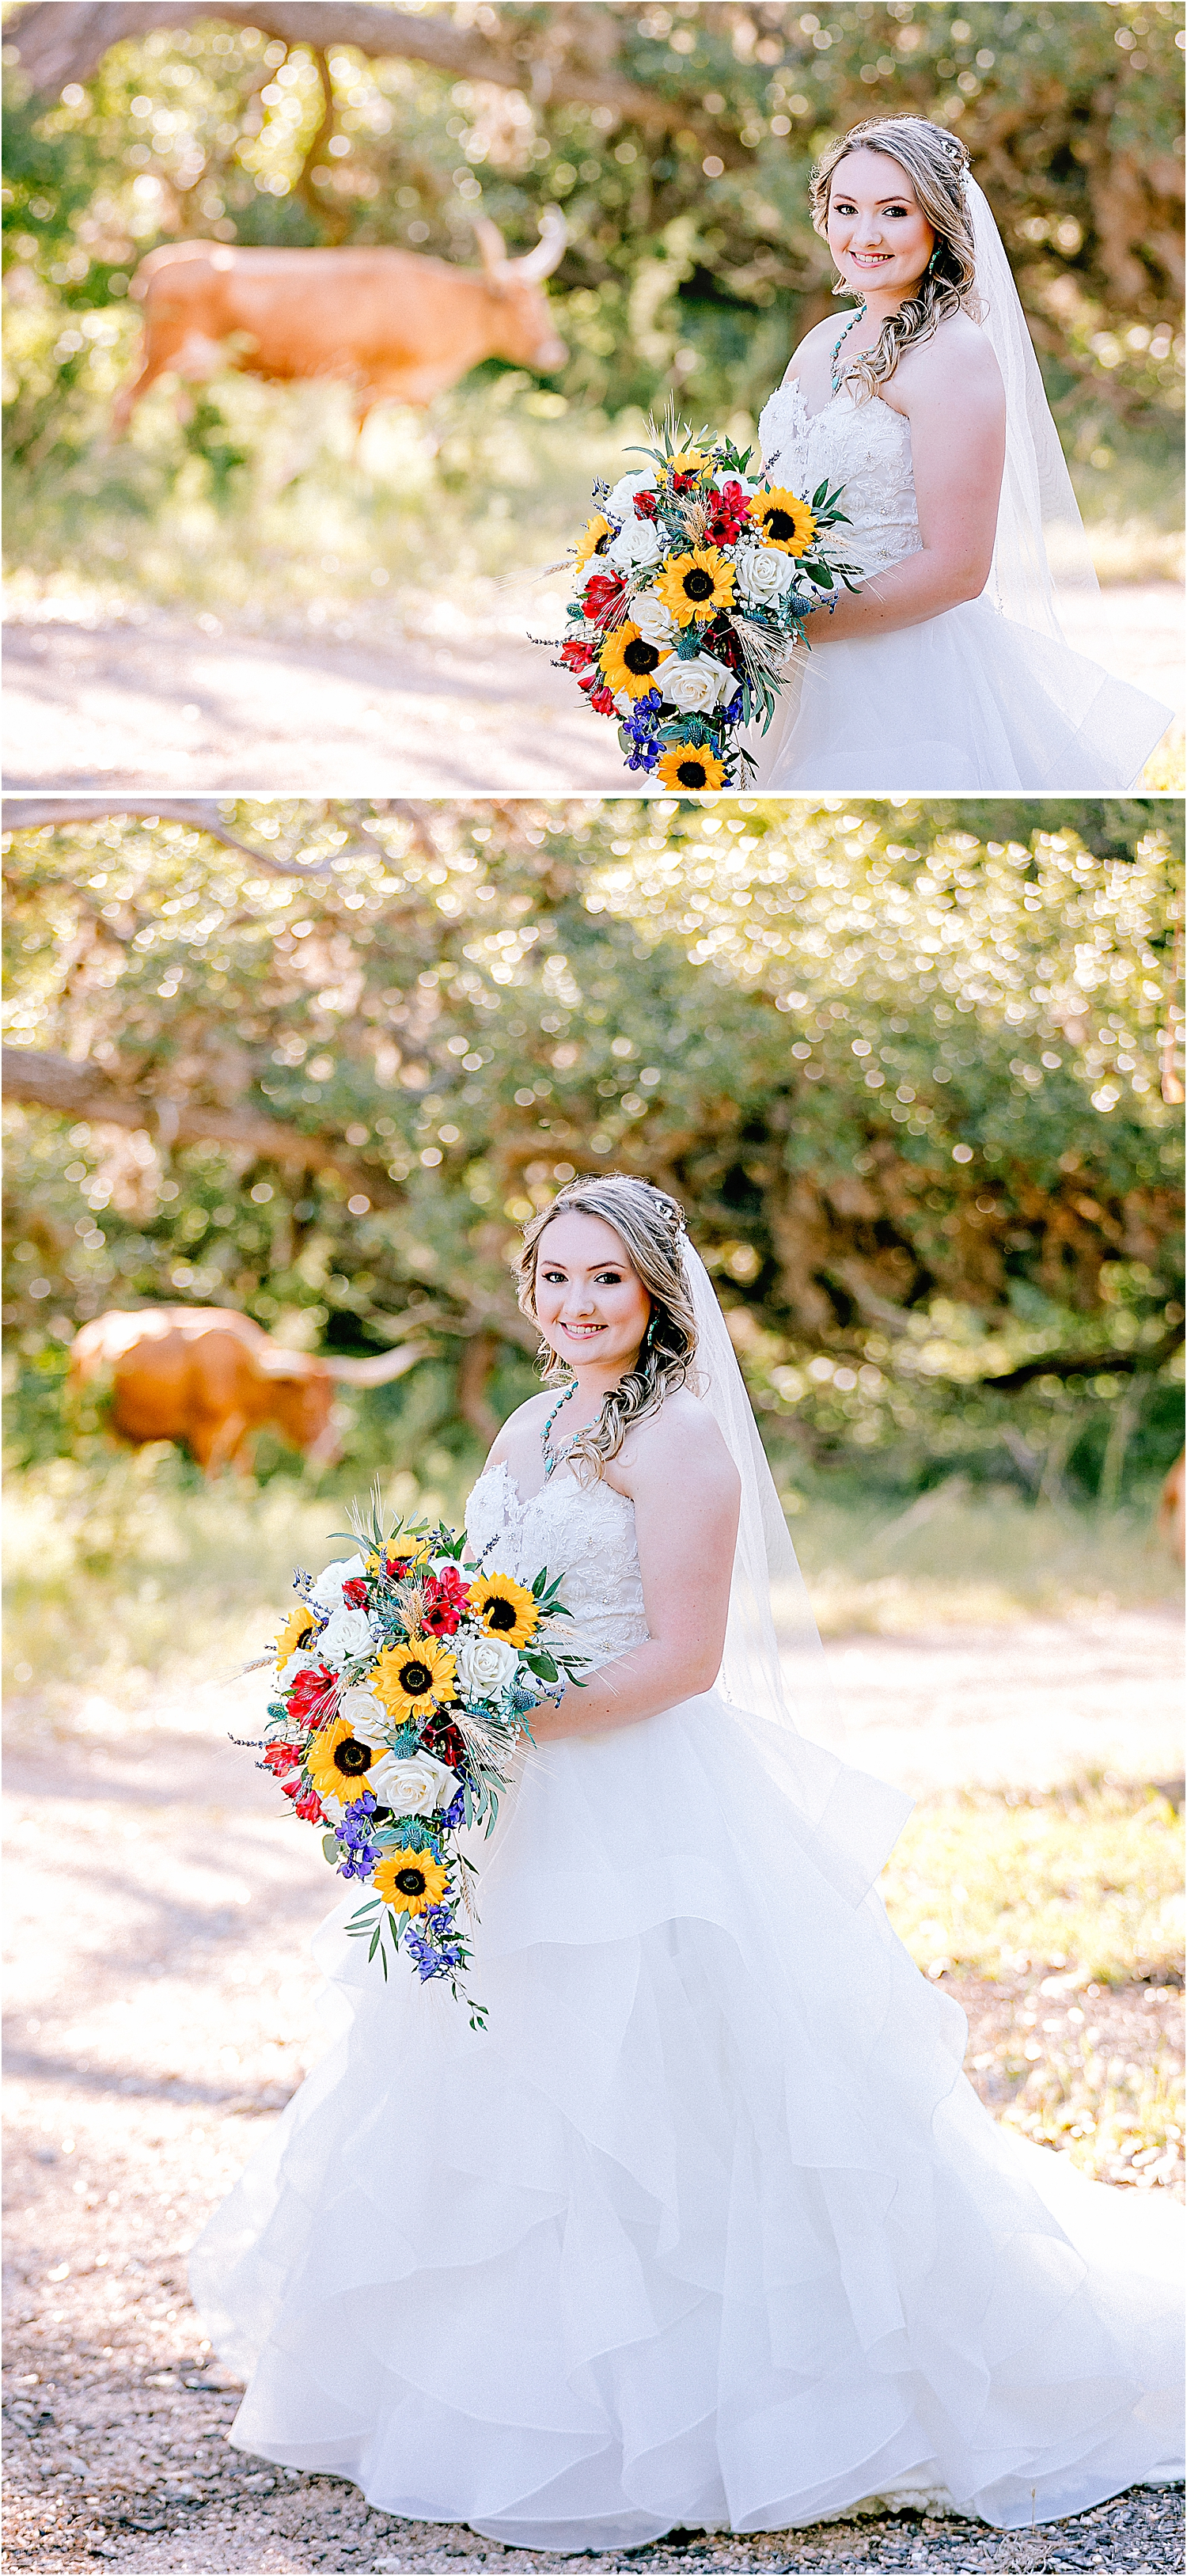 Carly-Barton-Photography-Texas-Bridals-Boerne-Rustic-Wedding-Photos_0001.jpg